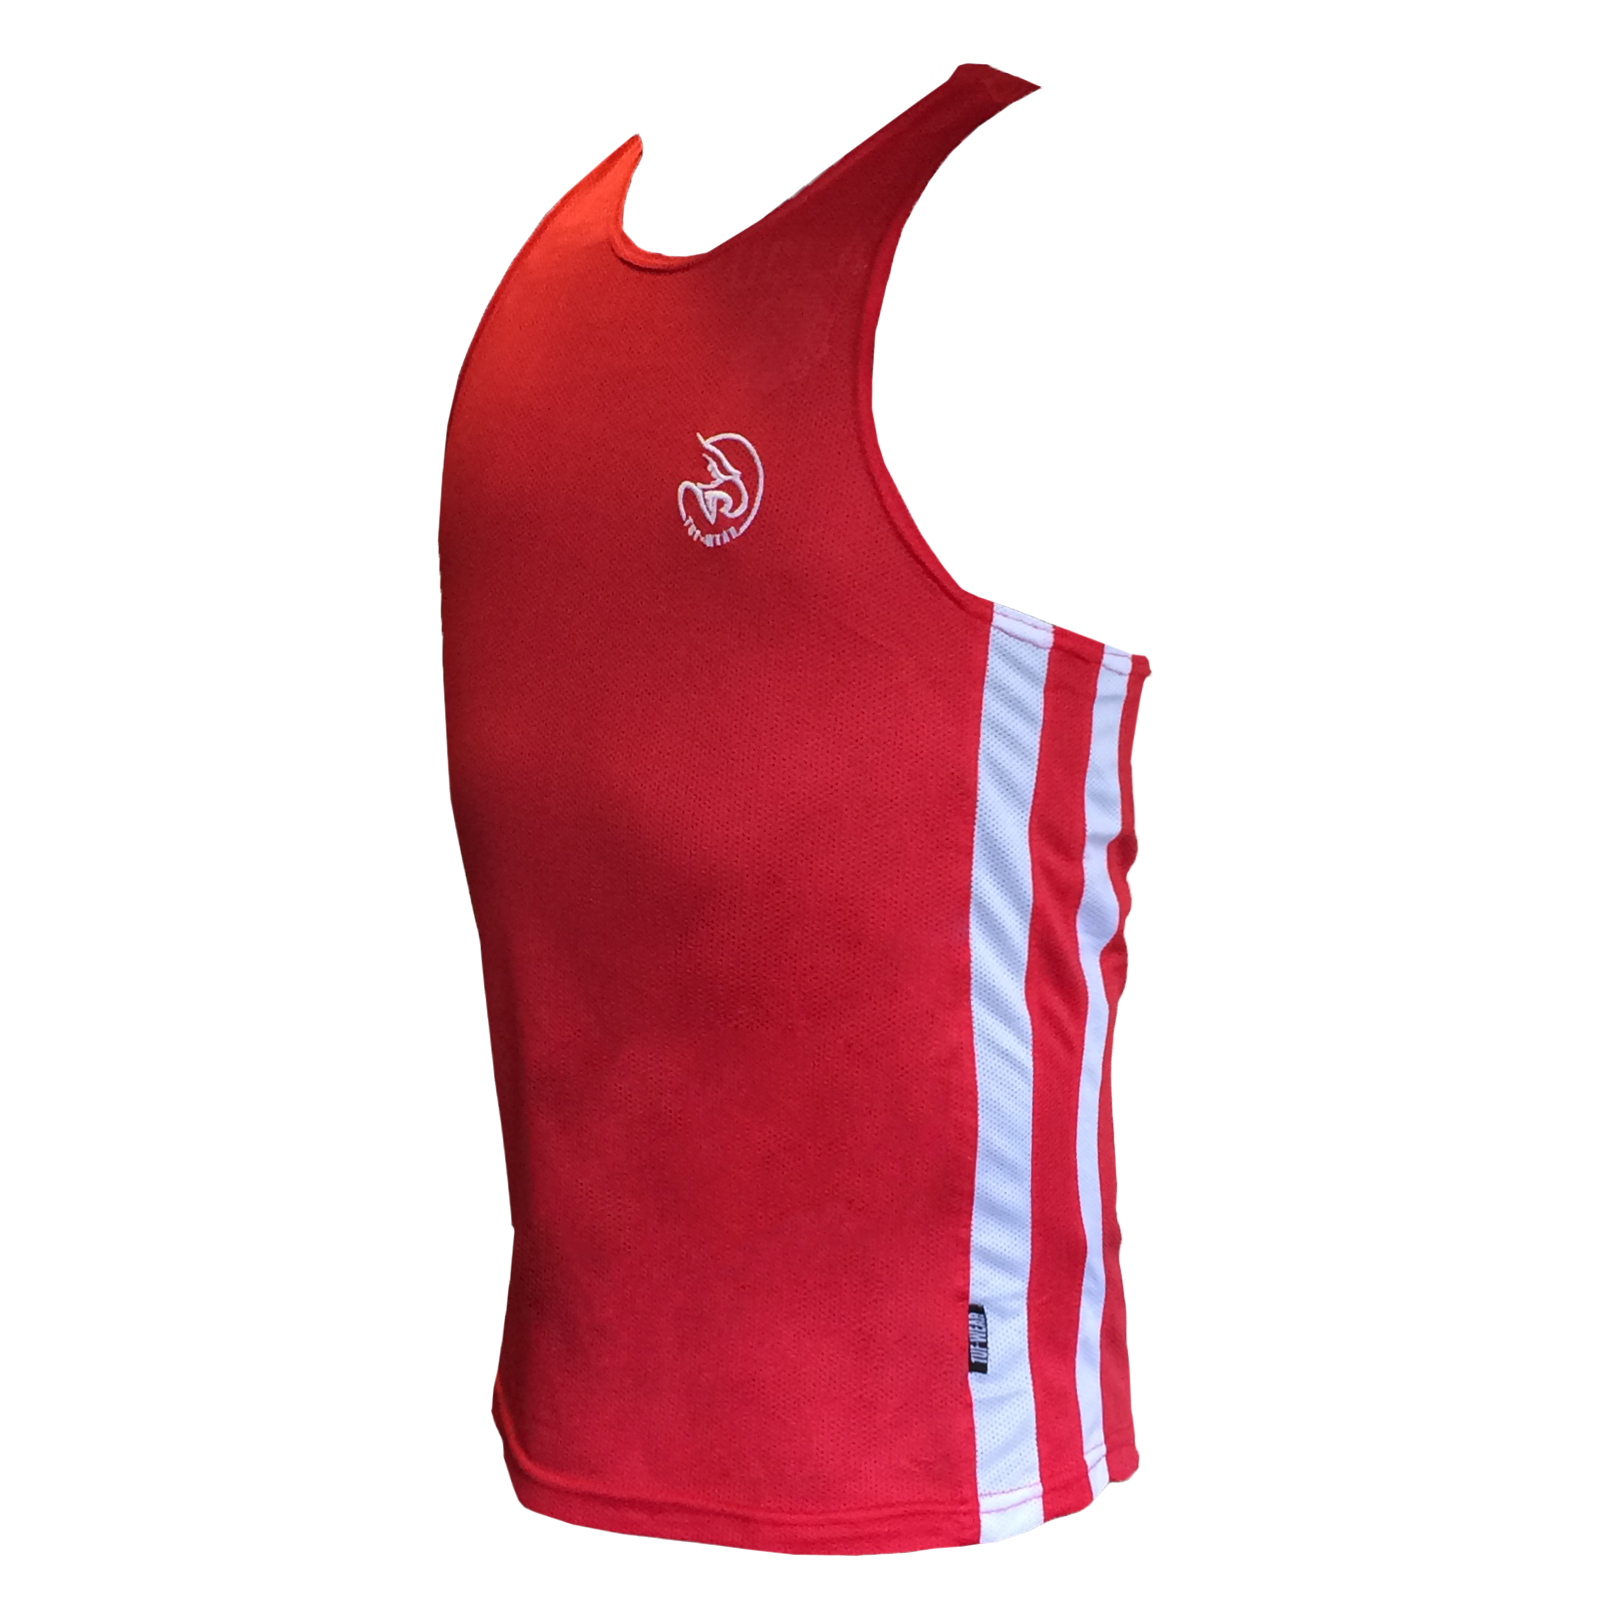 CLUB BOXING VEST - TW12302-RED